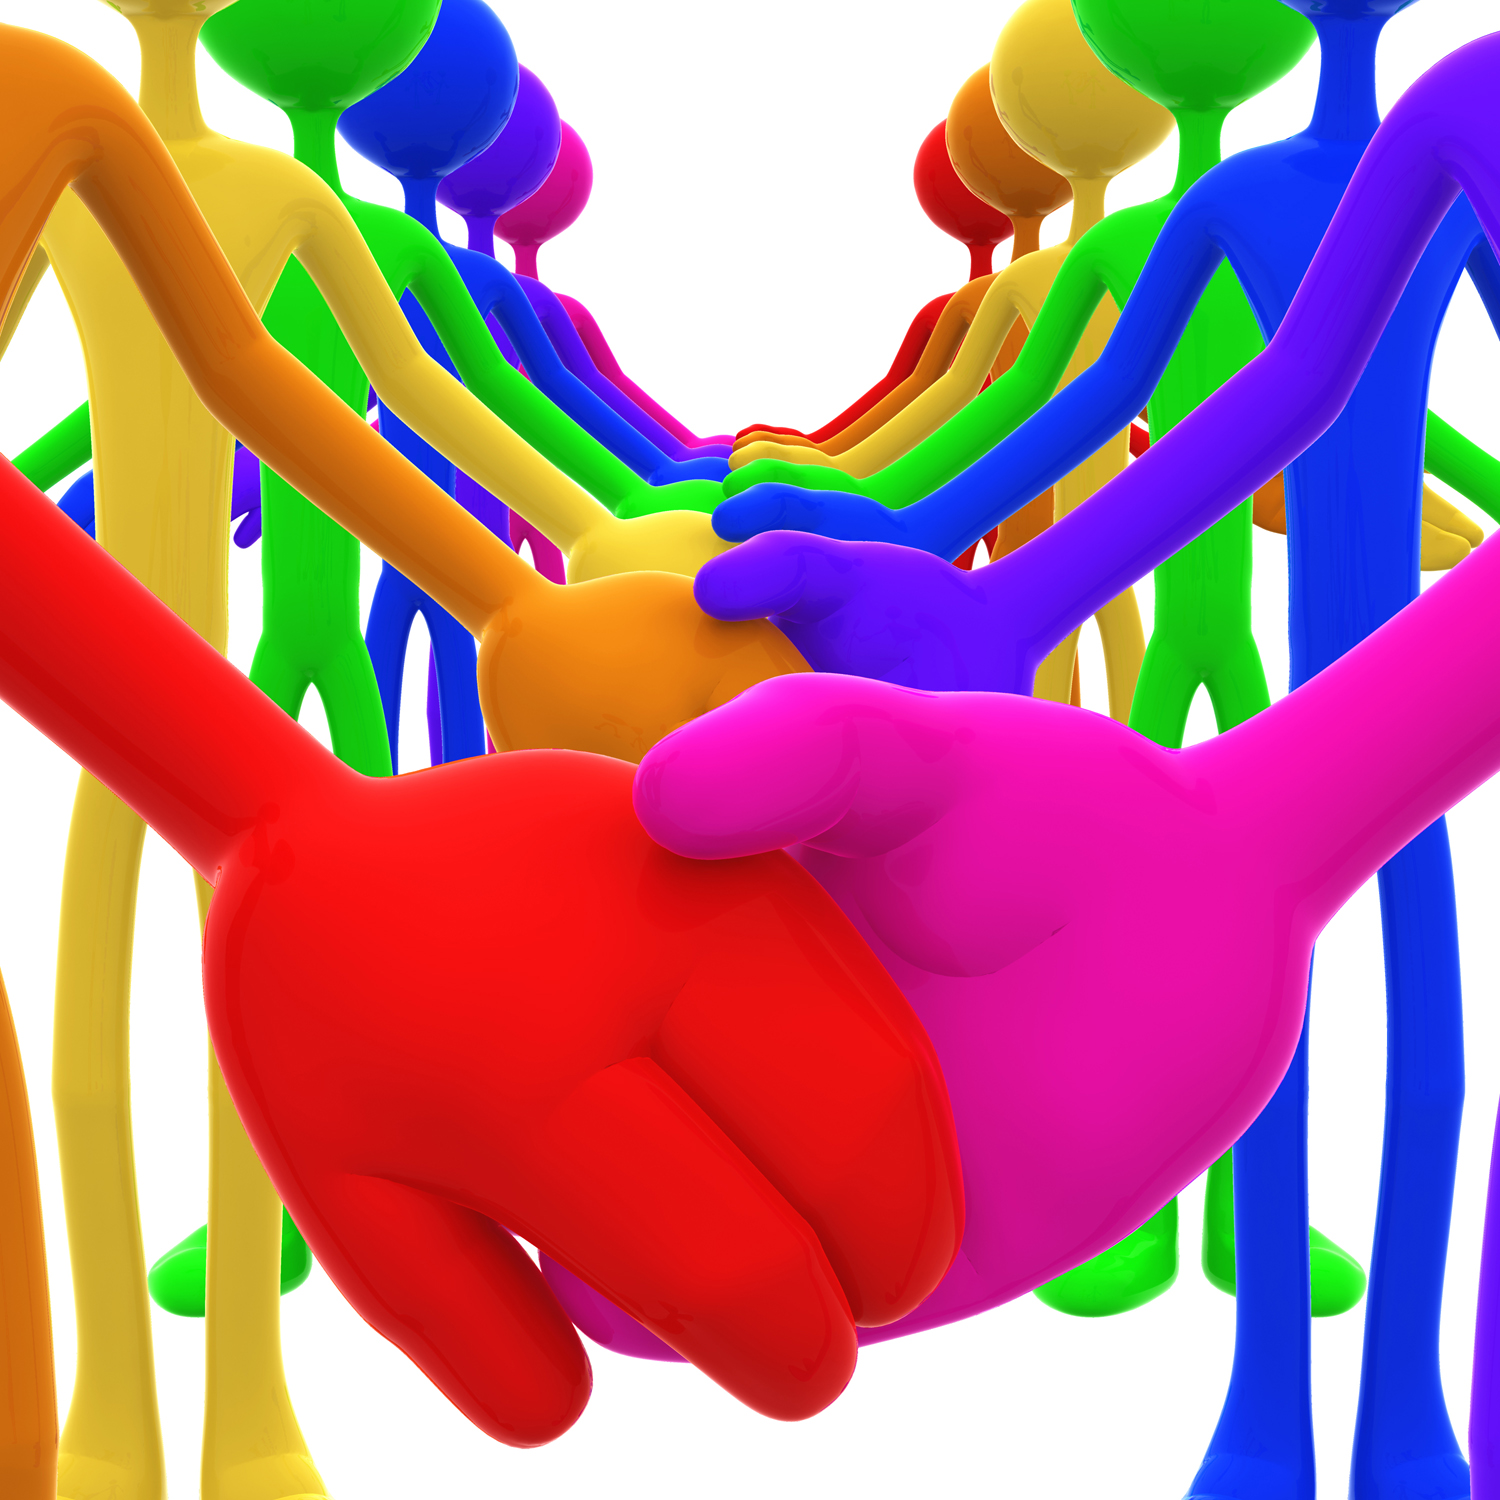 Unity holding hands free clipart image black and white library File:3D Full Spectrum Unity Holding Hands Concept.jpg ... image black and white library